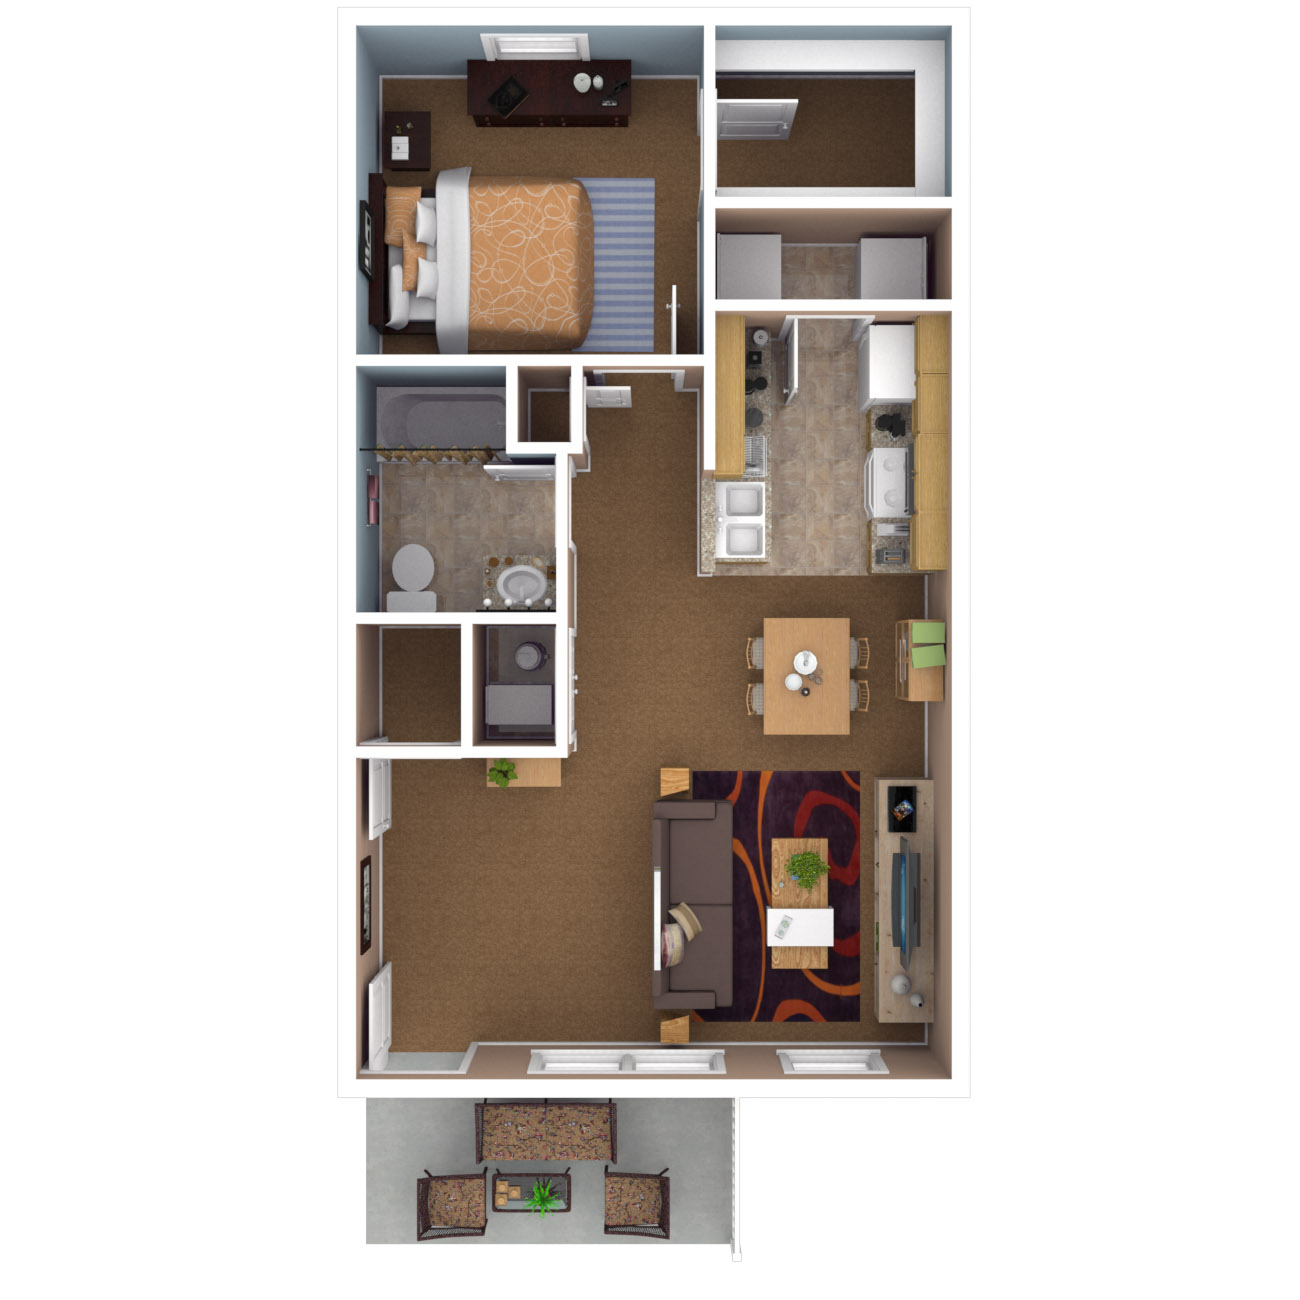 Apartments in indianapolis floor plans for One bedroom apartment floor plans